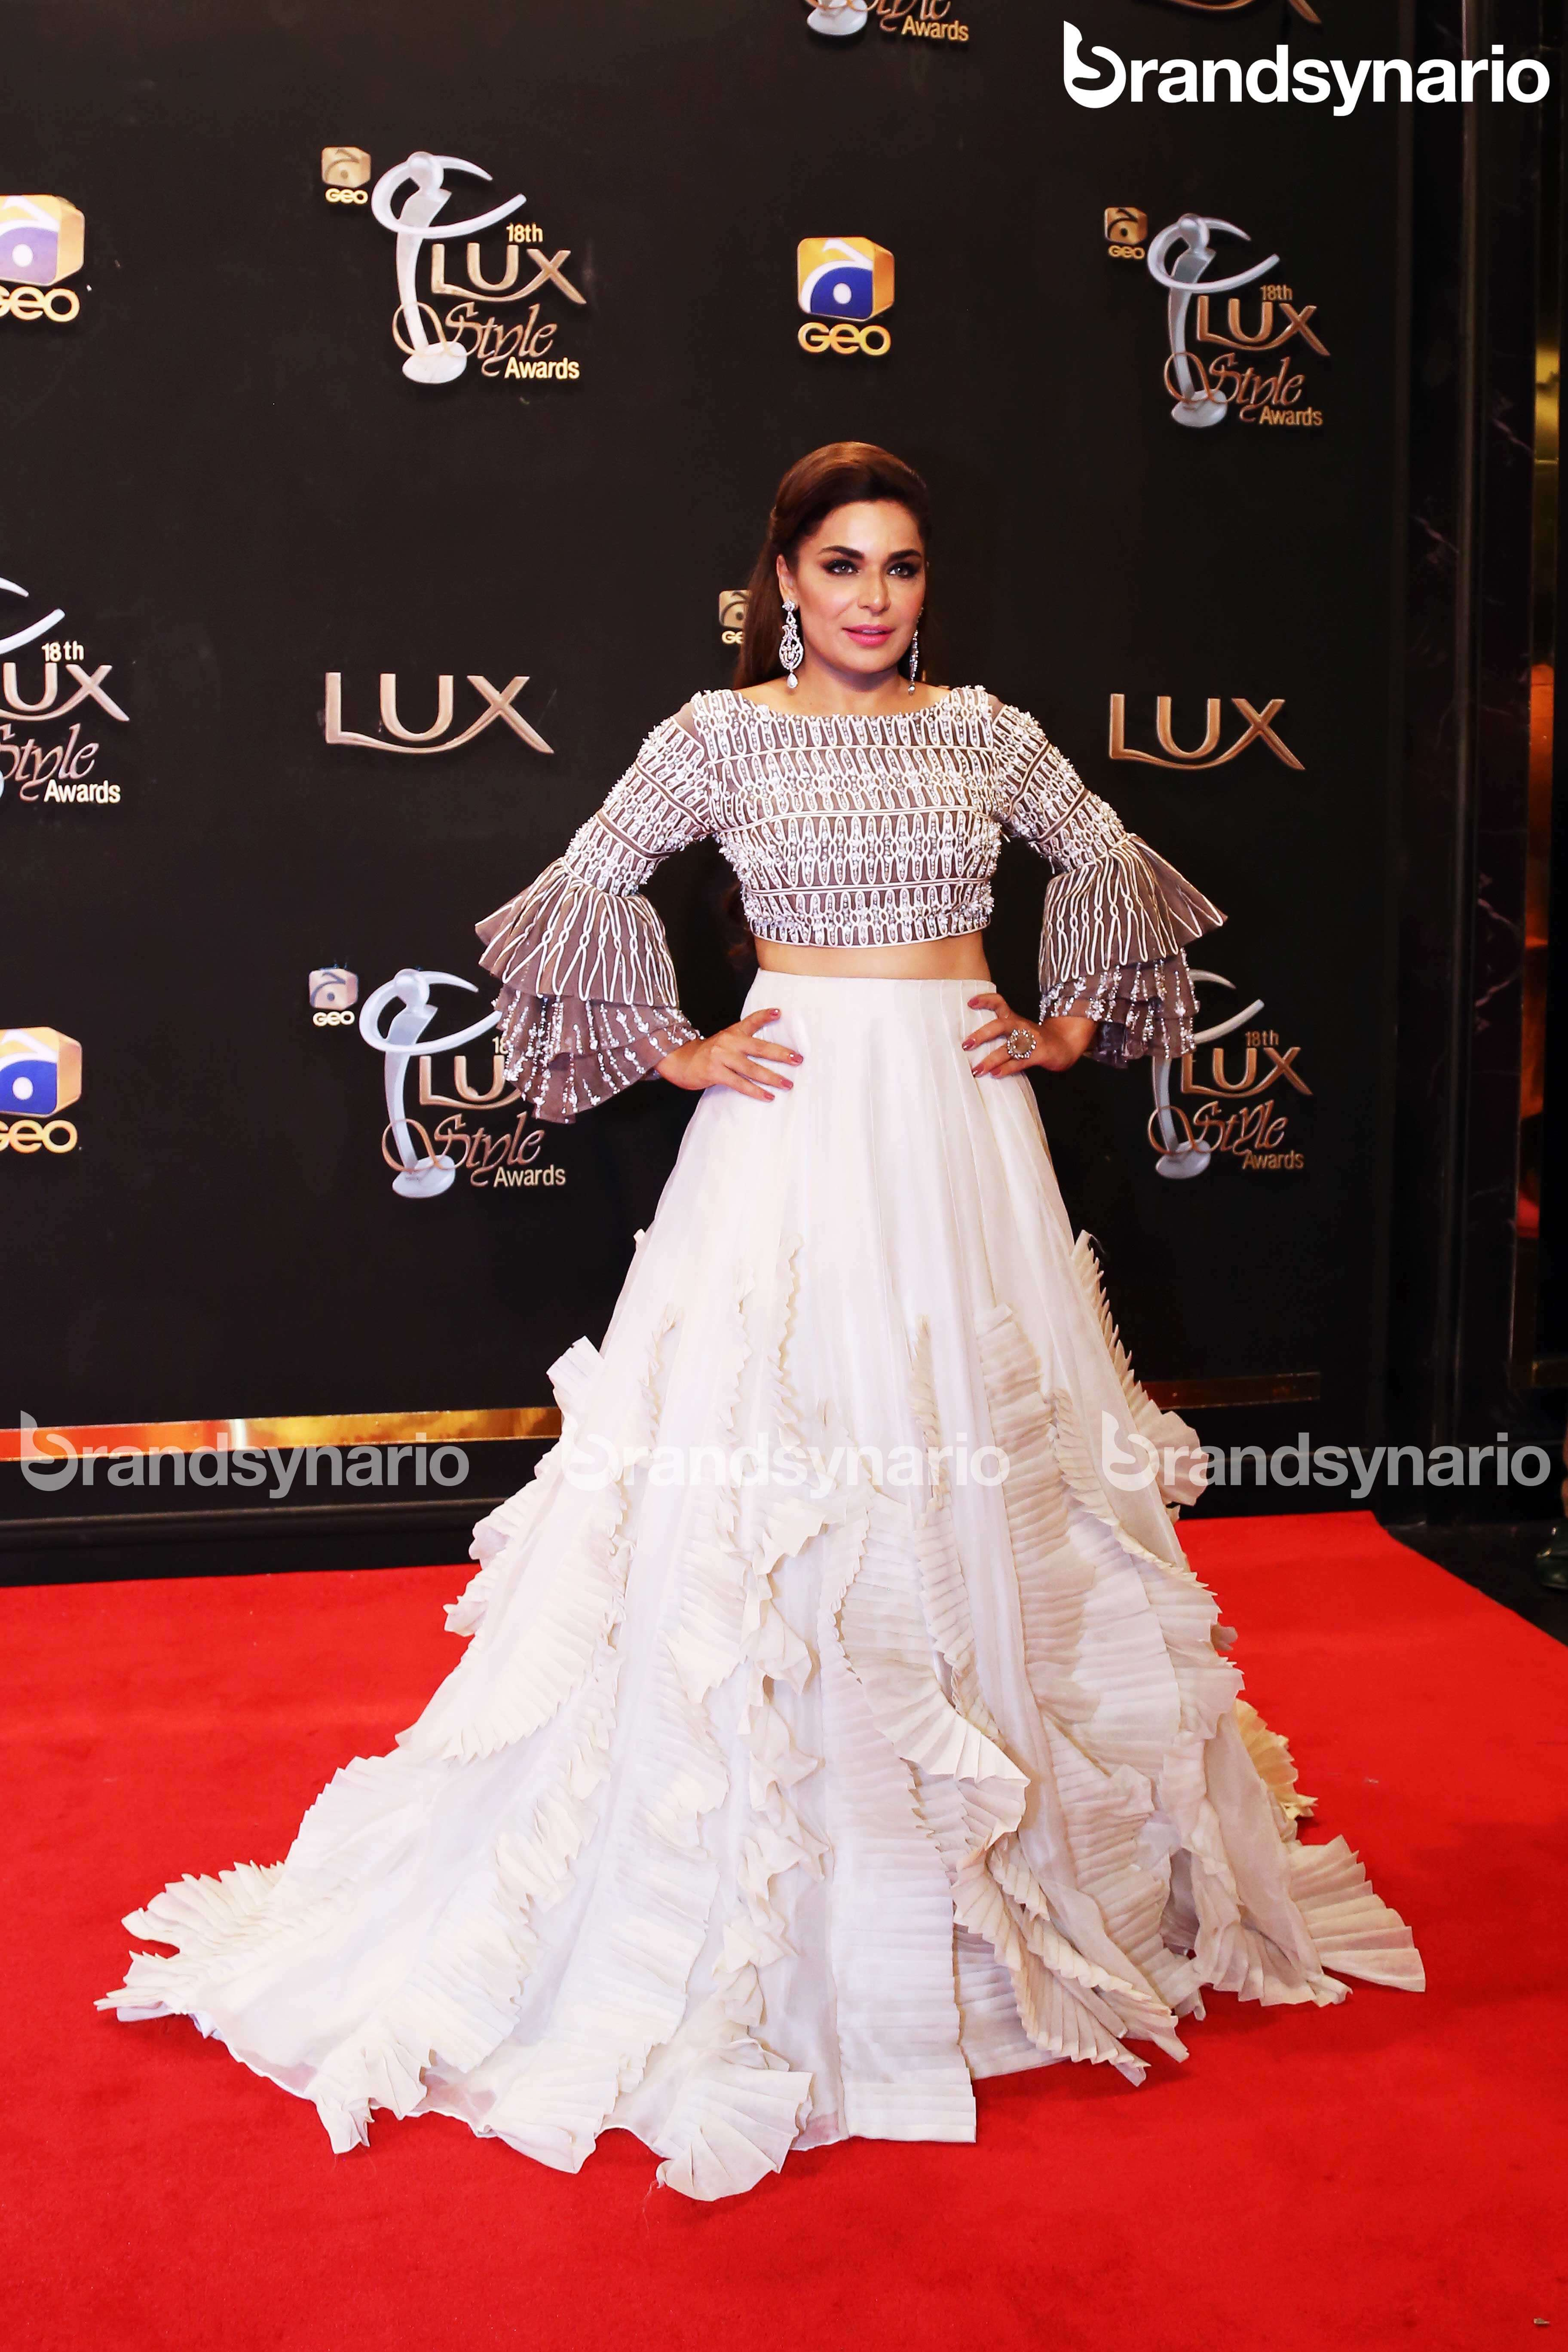 Lux Style Awards 2019: Best Dressed Celebrities on the Red Carpet